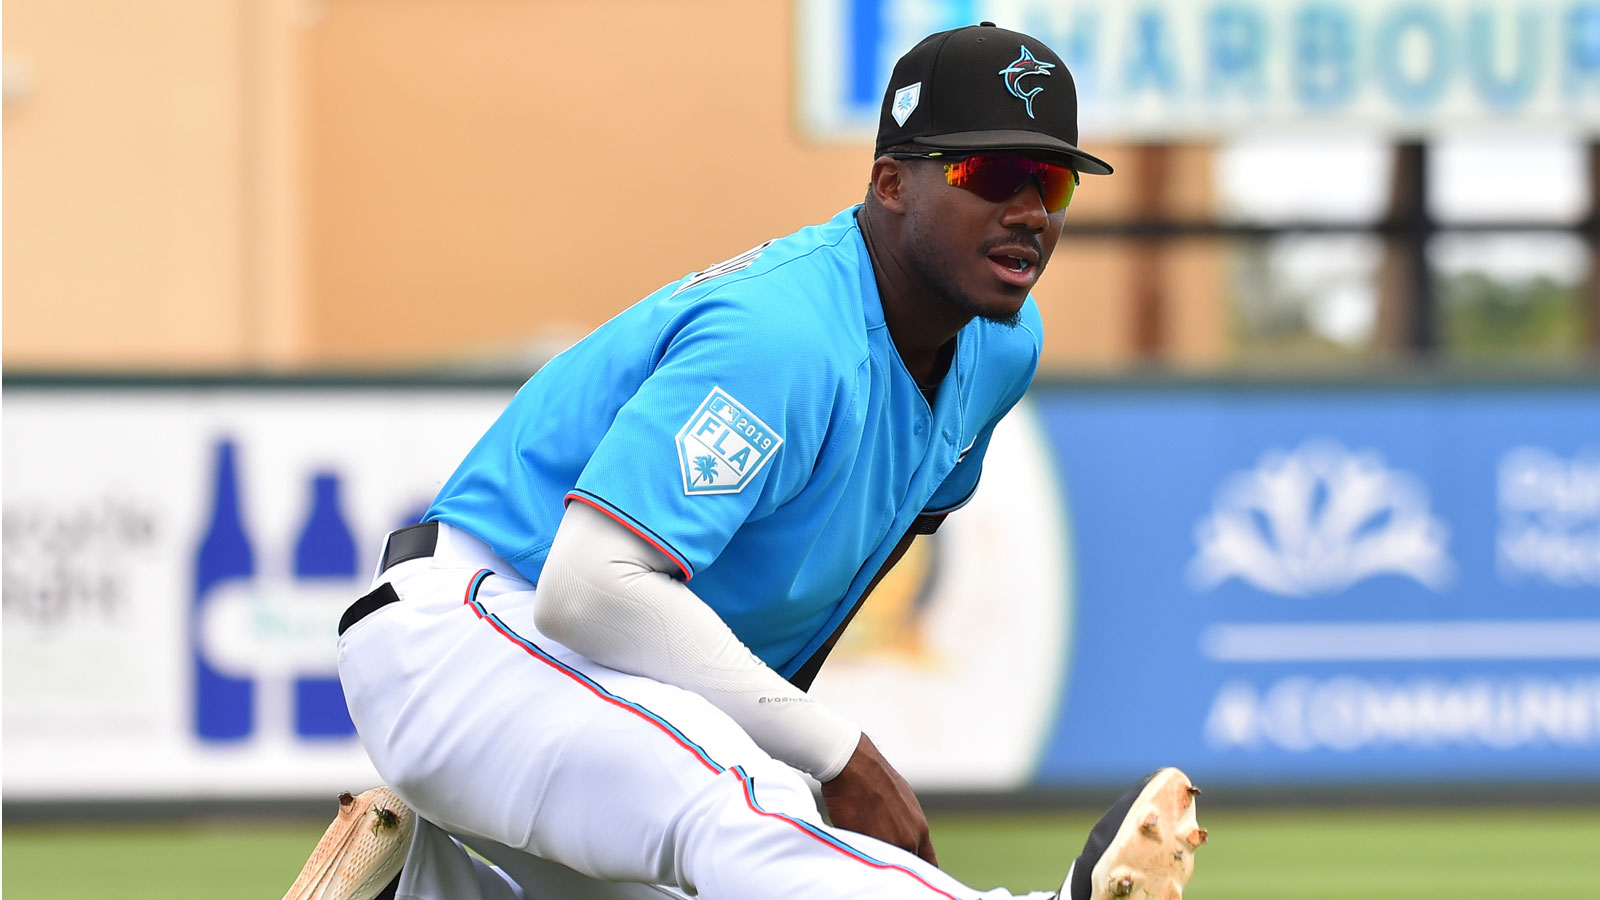 Lewis Brinson expecting spring training home run binge to continue into Marlins' season